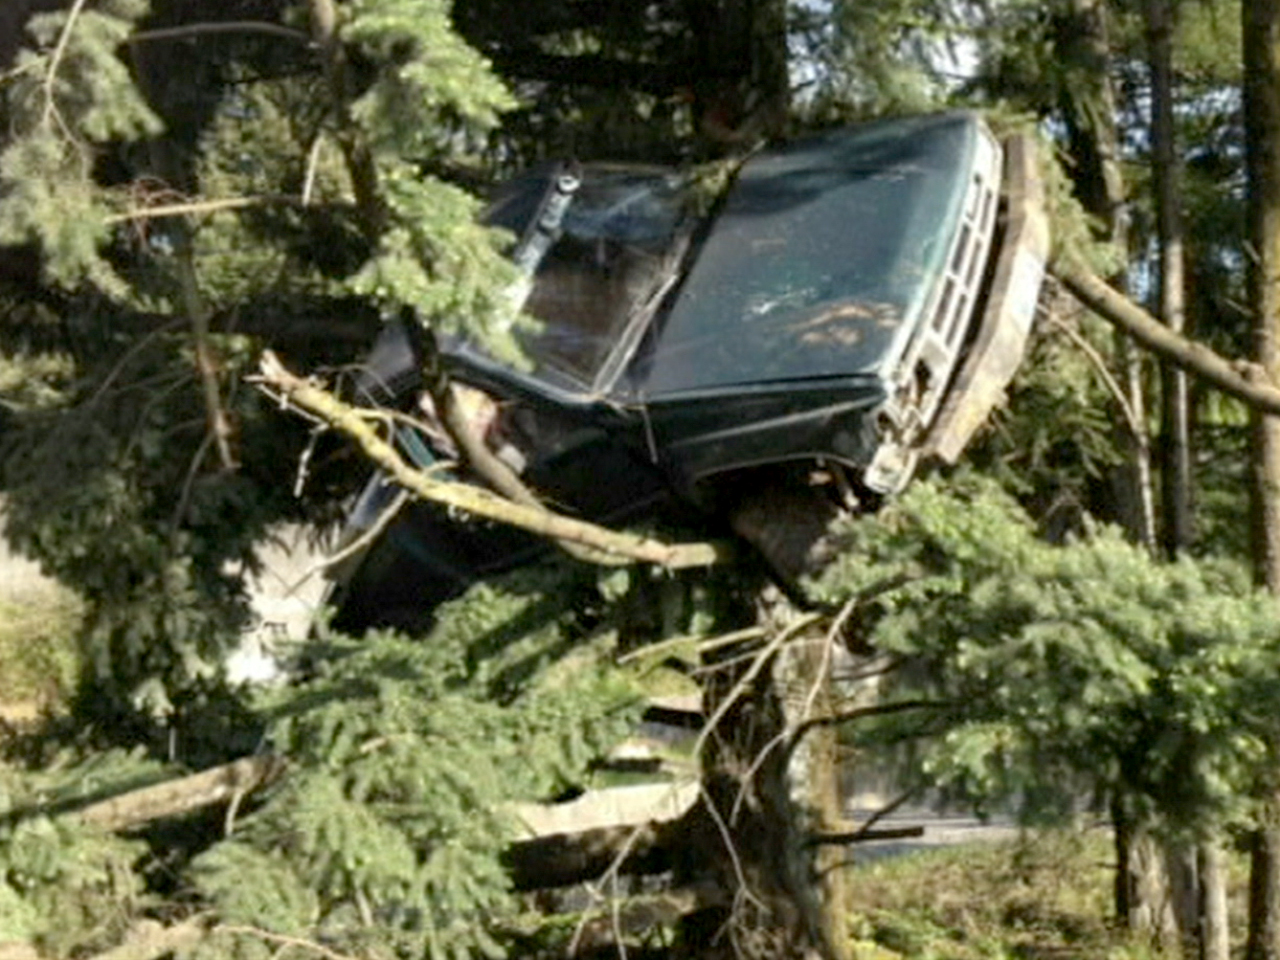 Oregon Driver Cited For Parking Car In Tree